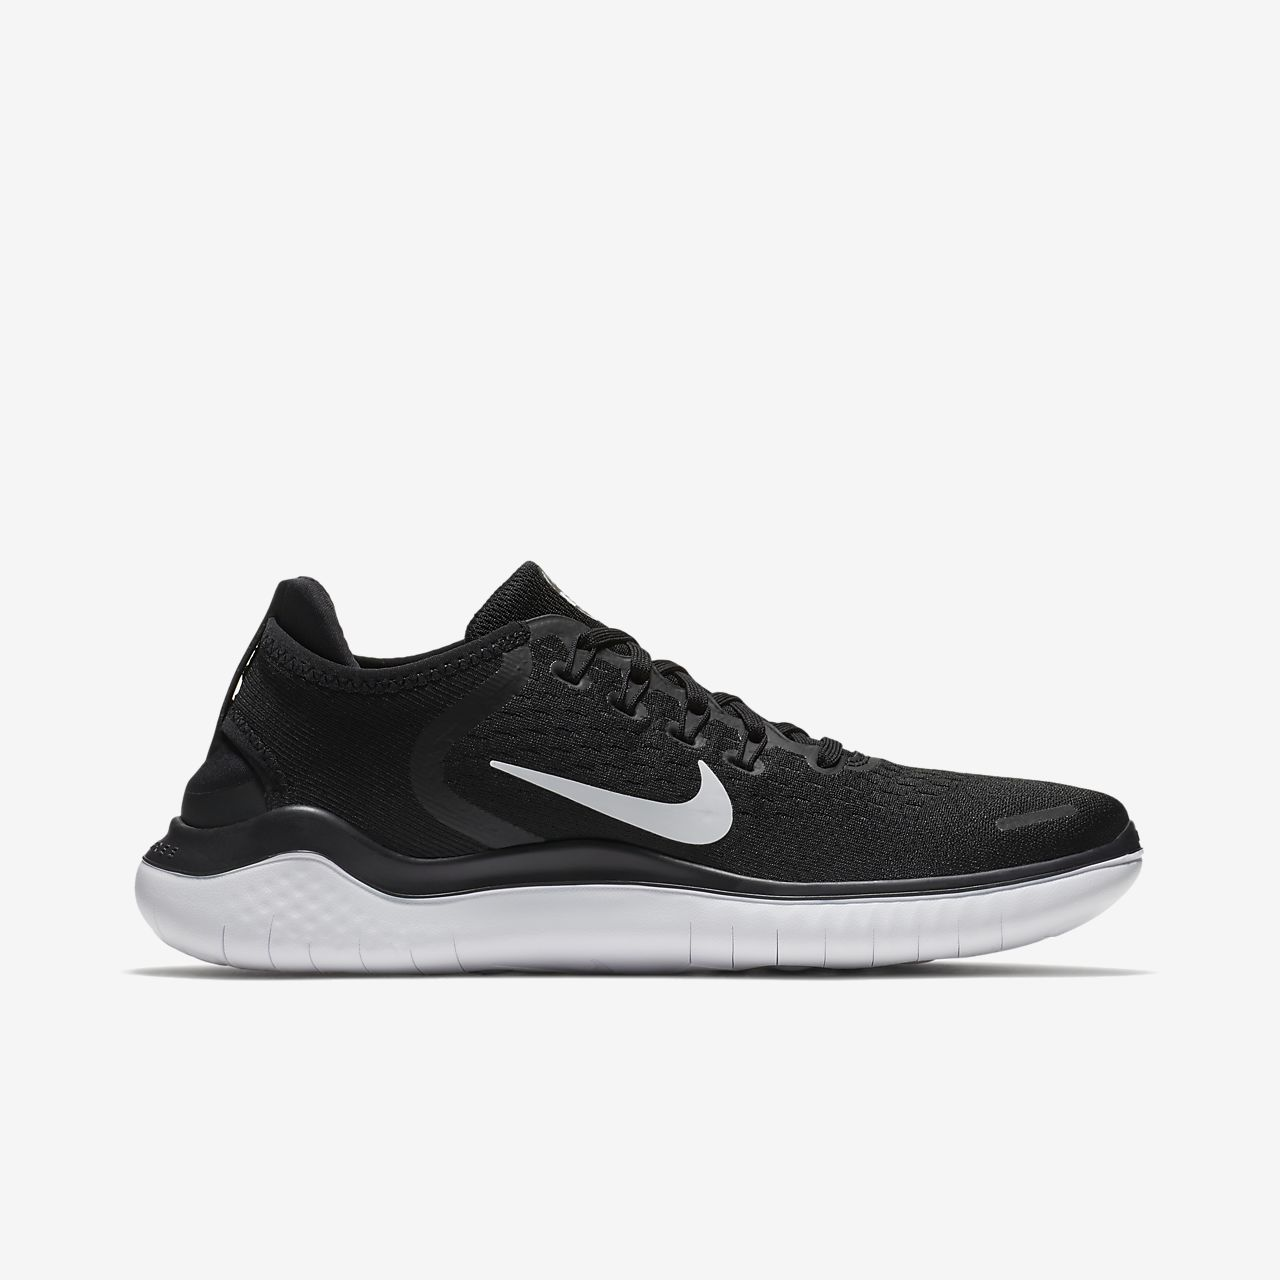 big sale 278a6 38b97 ... Nike Free RN 2018 Men s Running Shoe